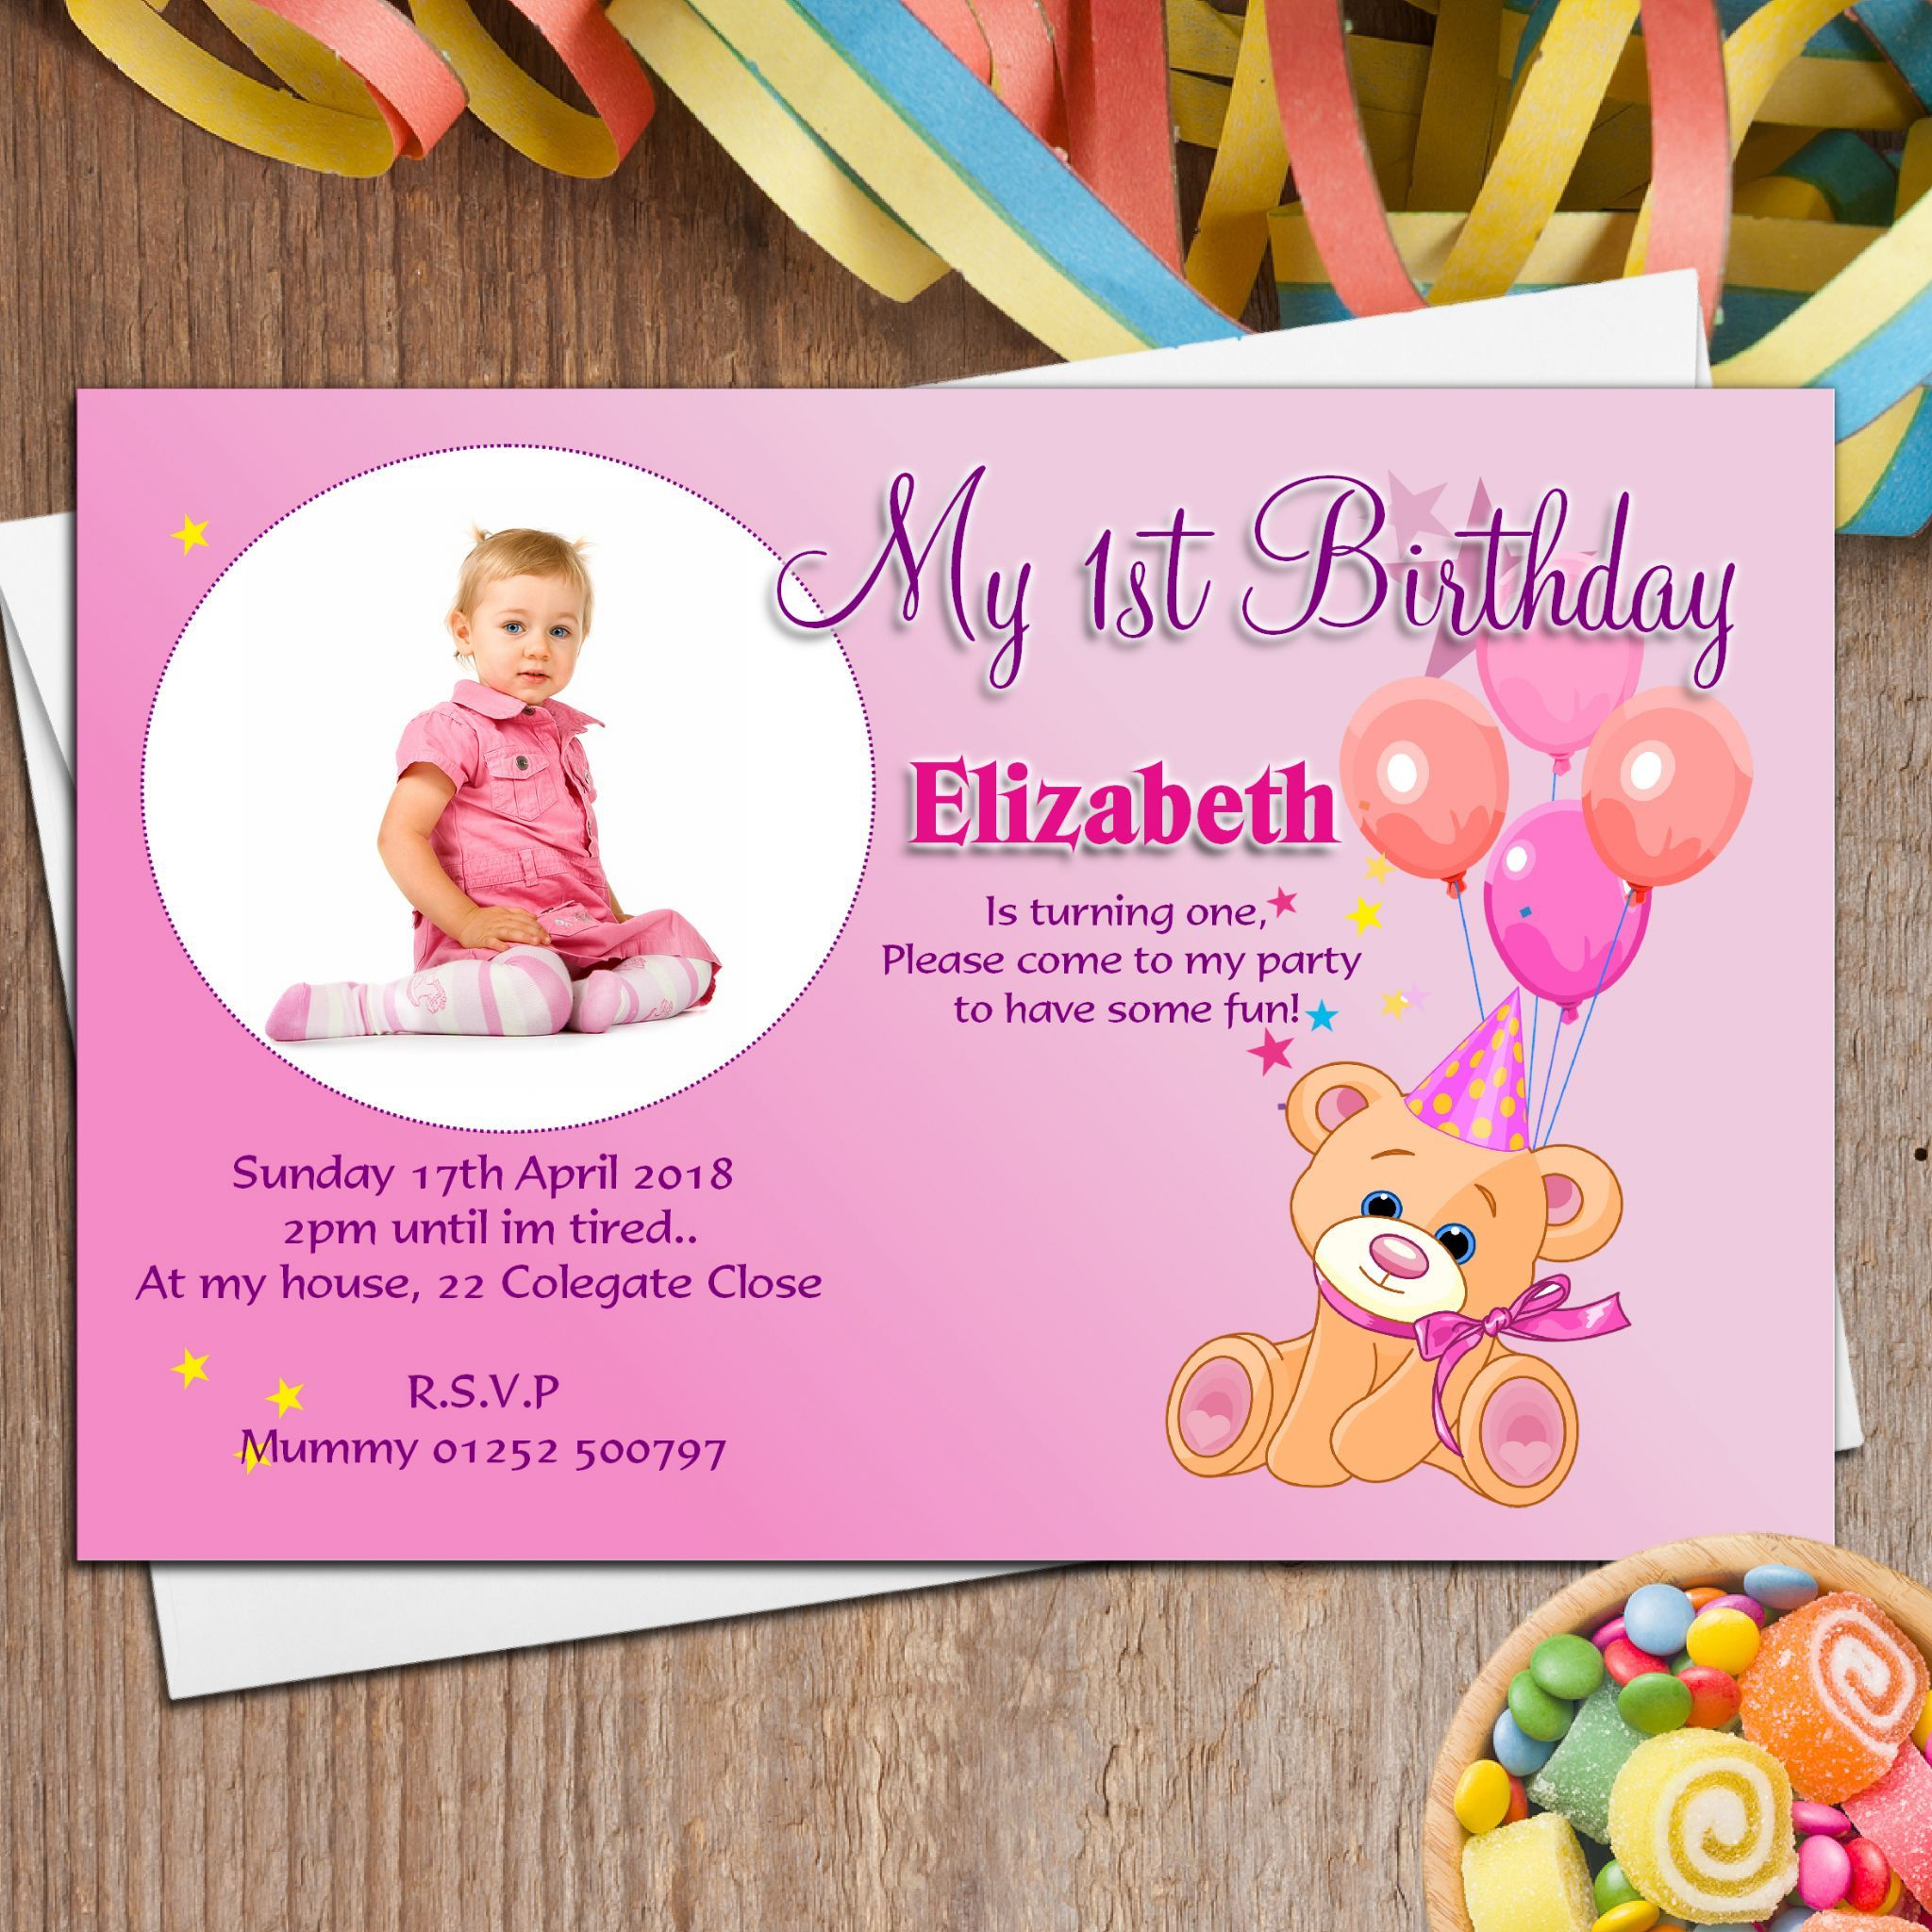 Fun Birthday Invitations for Baby 16